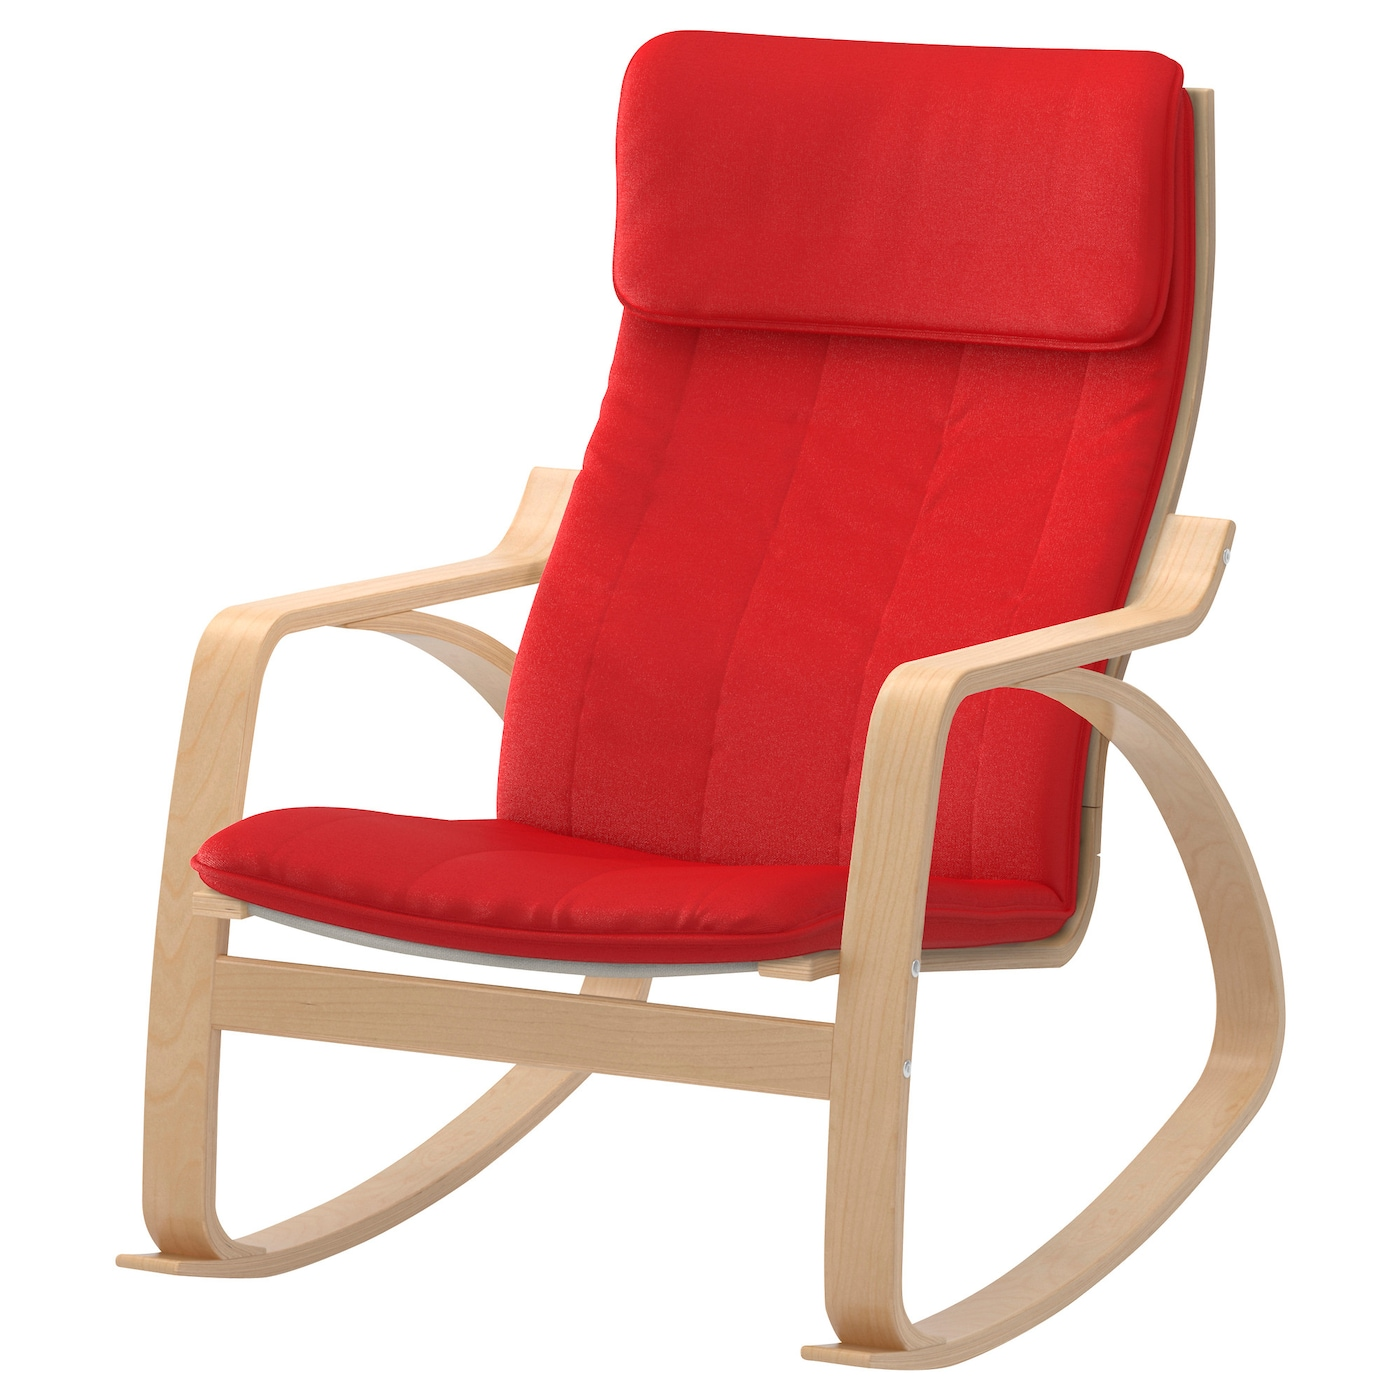 Ikea Lillberg Rocking Chair - Ikea po ng rocking chair the high back gives good support for your neck